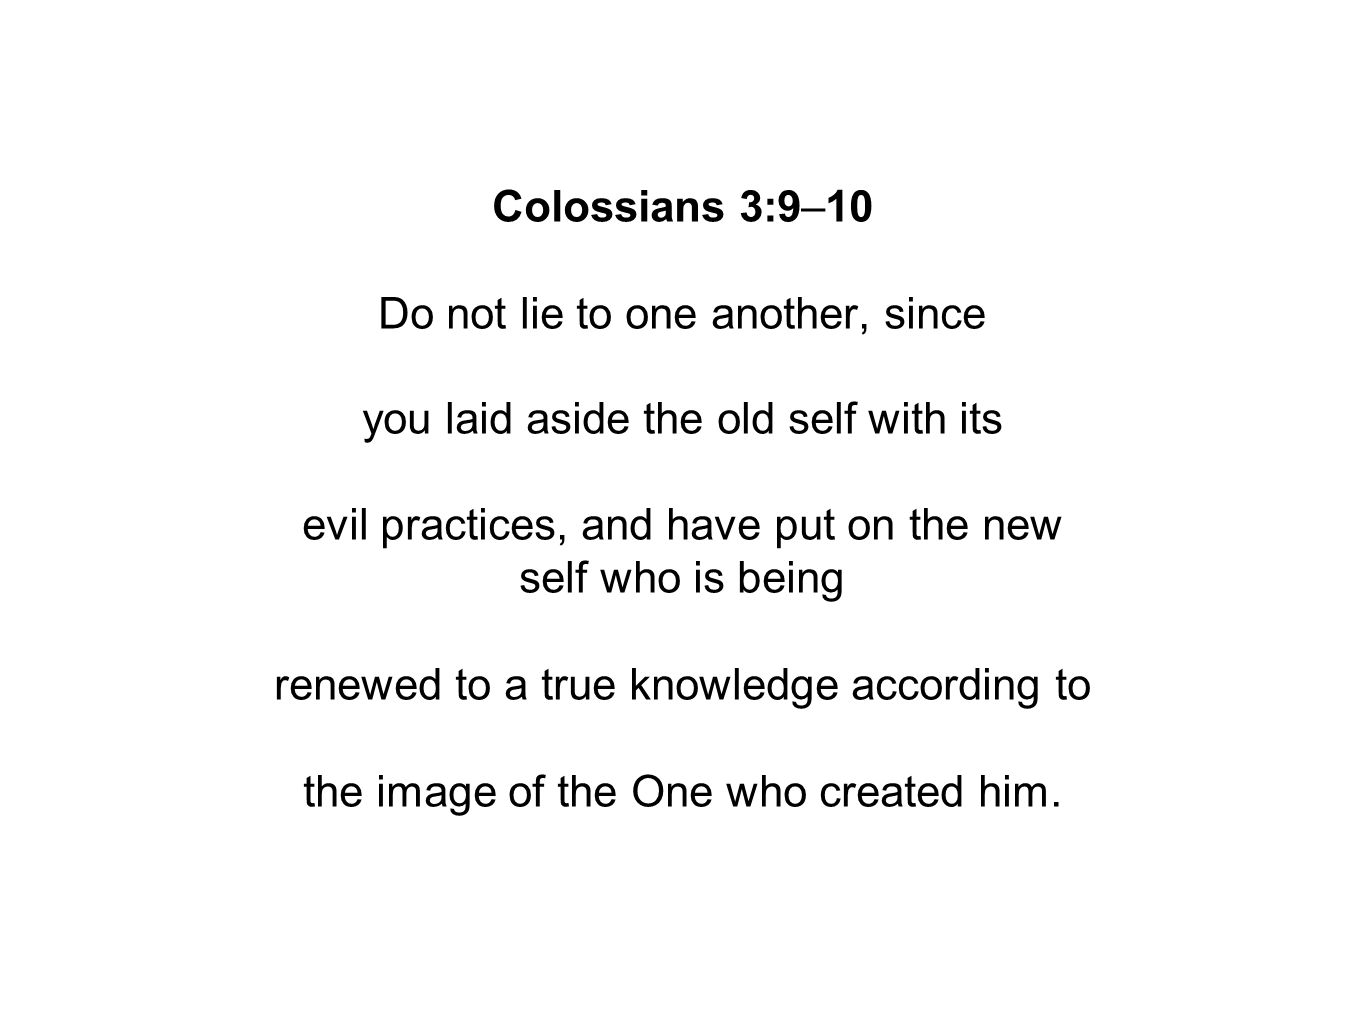 Colossians 3:9–10 Do not lie to one another, since you laid aside the old self with its evil practices, and have put on the new self who is being renewed to a true knowledge according to the image of the One who created him.